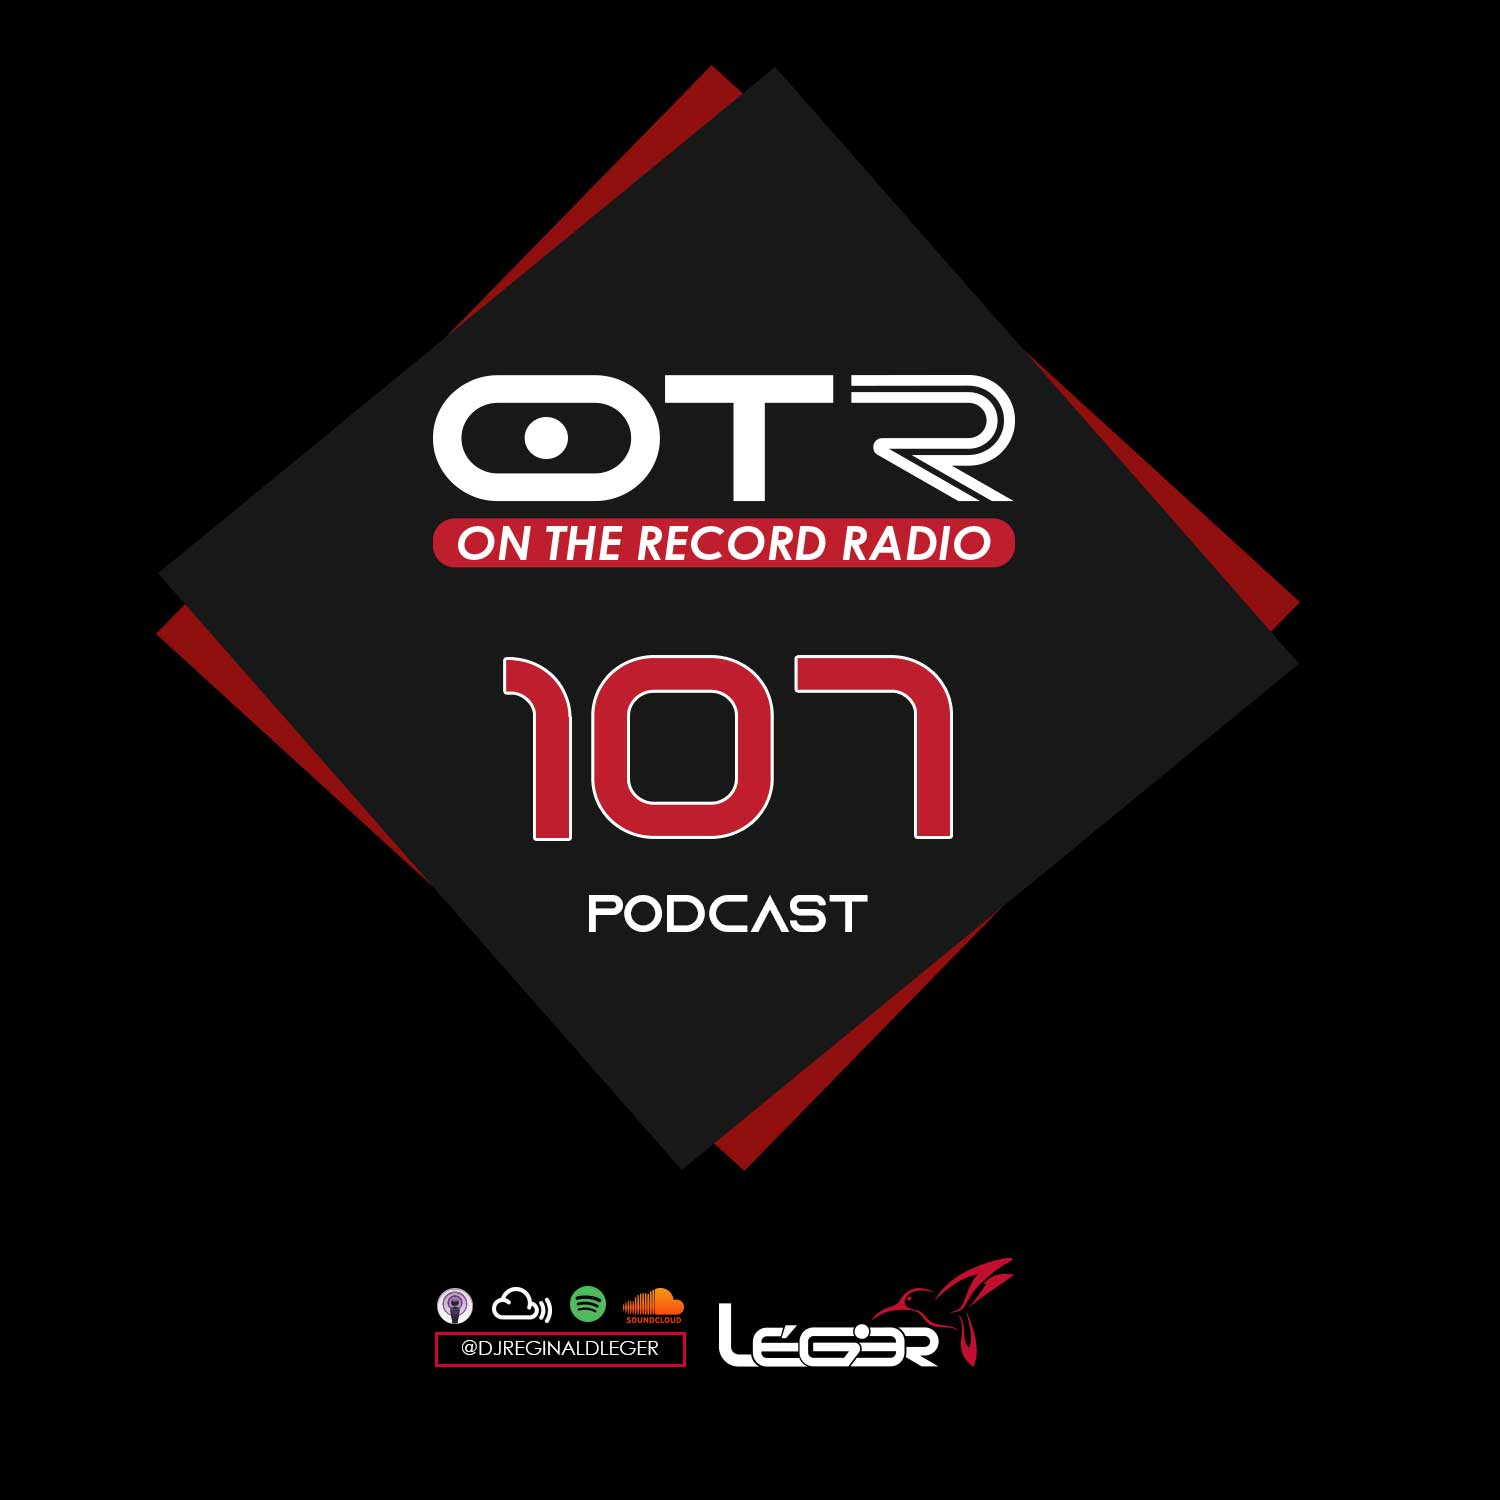 On The Record | OTR 107